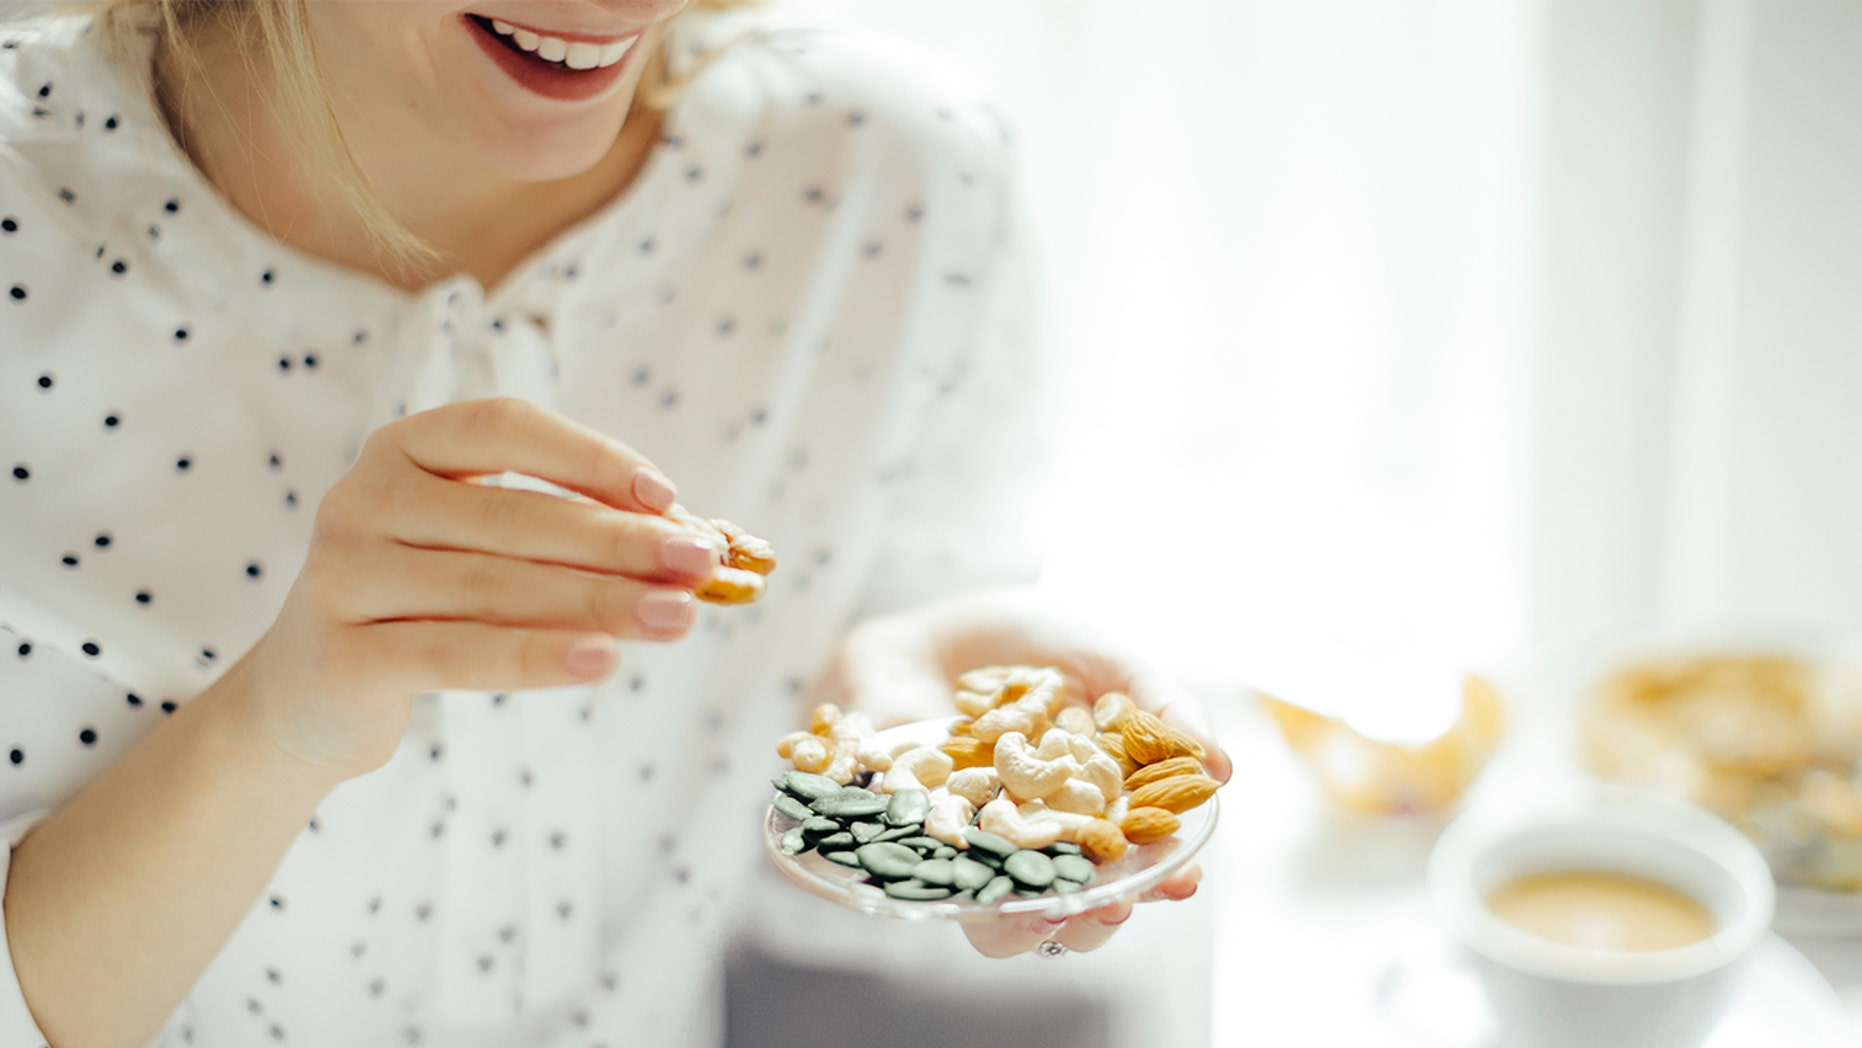 Could eating more walnuts be the trick to curbing cravings and losing weight?